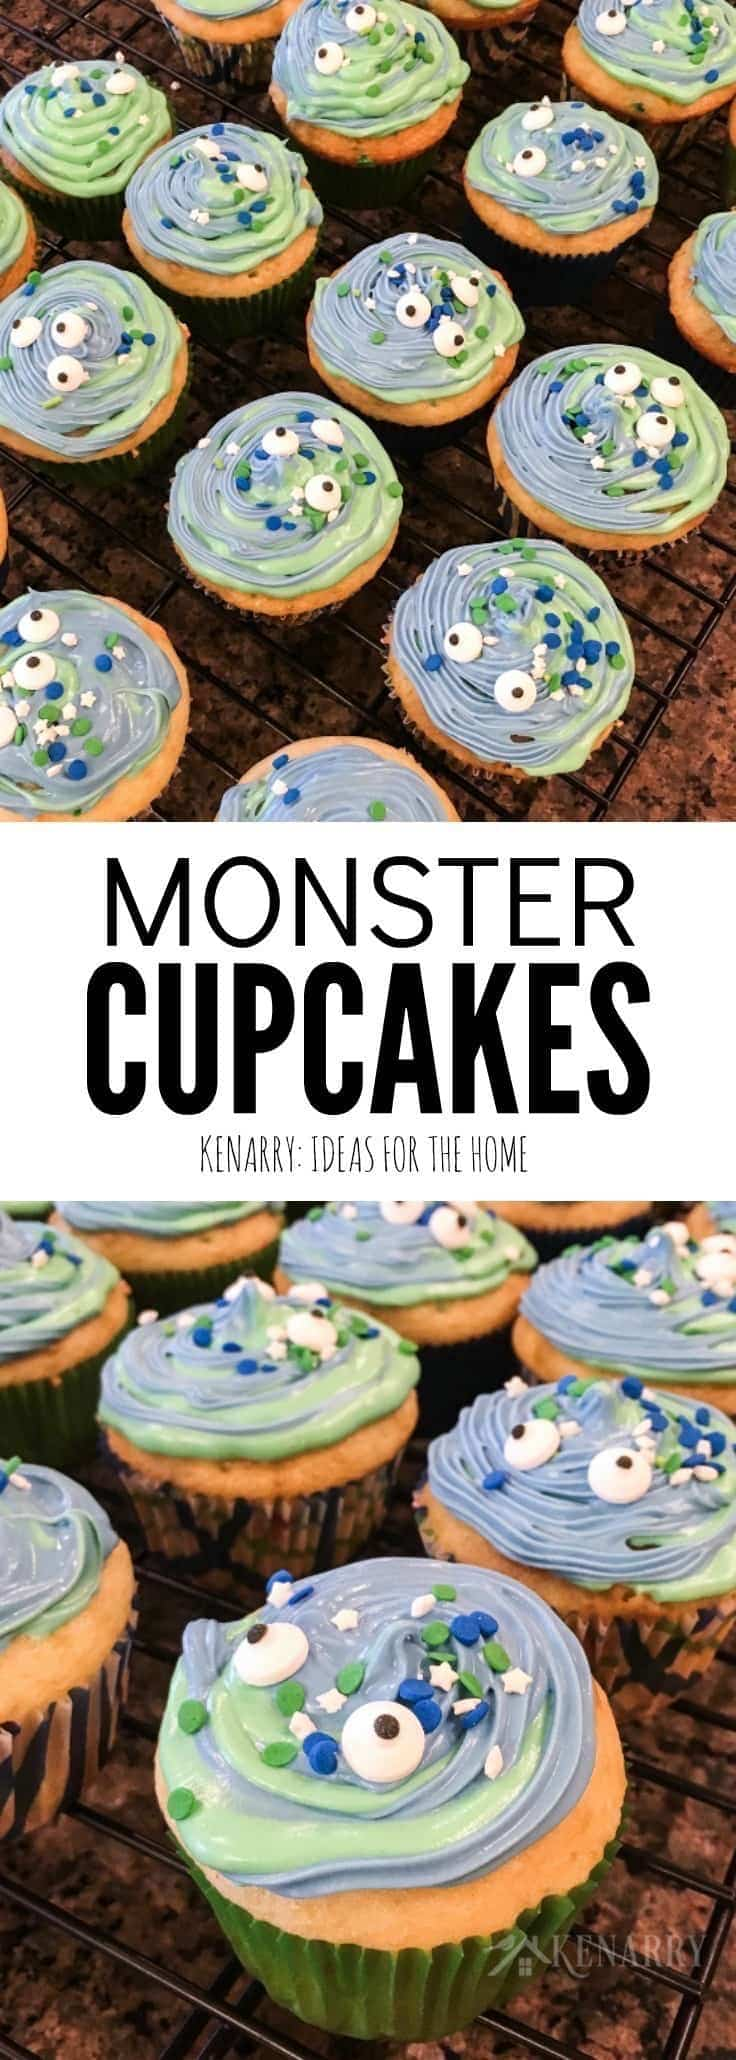 These monster cupcakes with blue and green swirl frosting would be a fun birthday treat or Halloween dessert. With this easy decorating tutorial, they could even pass as aliens!